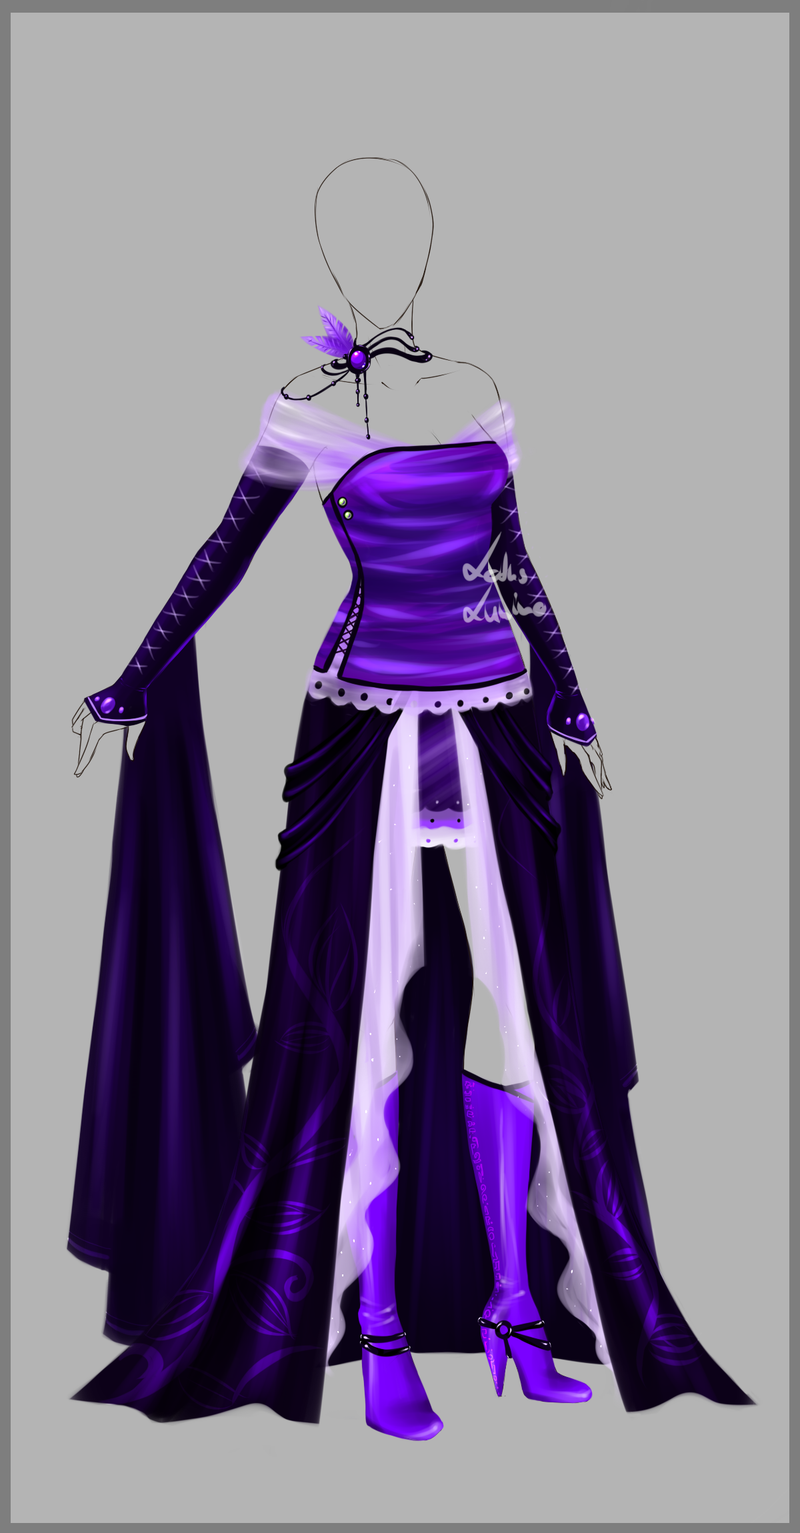 characterconcepts Outfit design 76 closed by